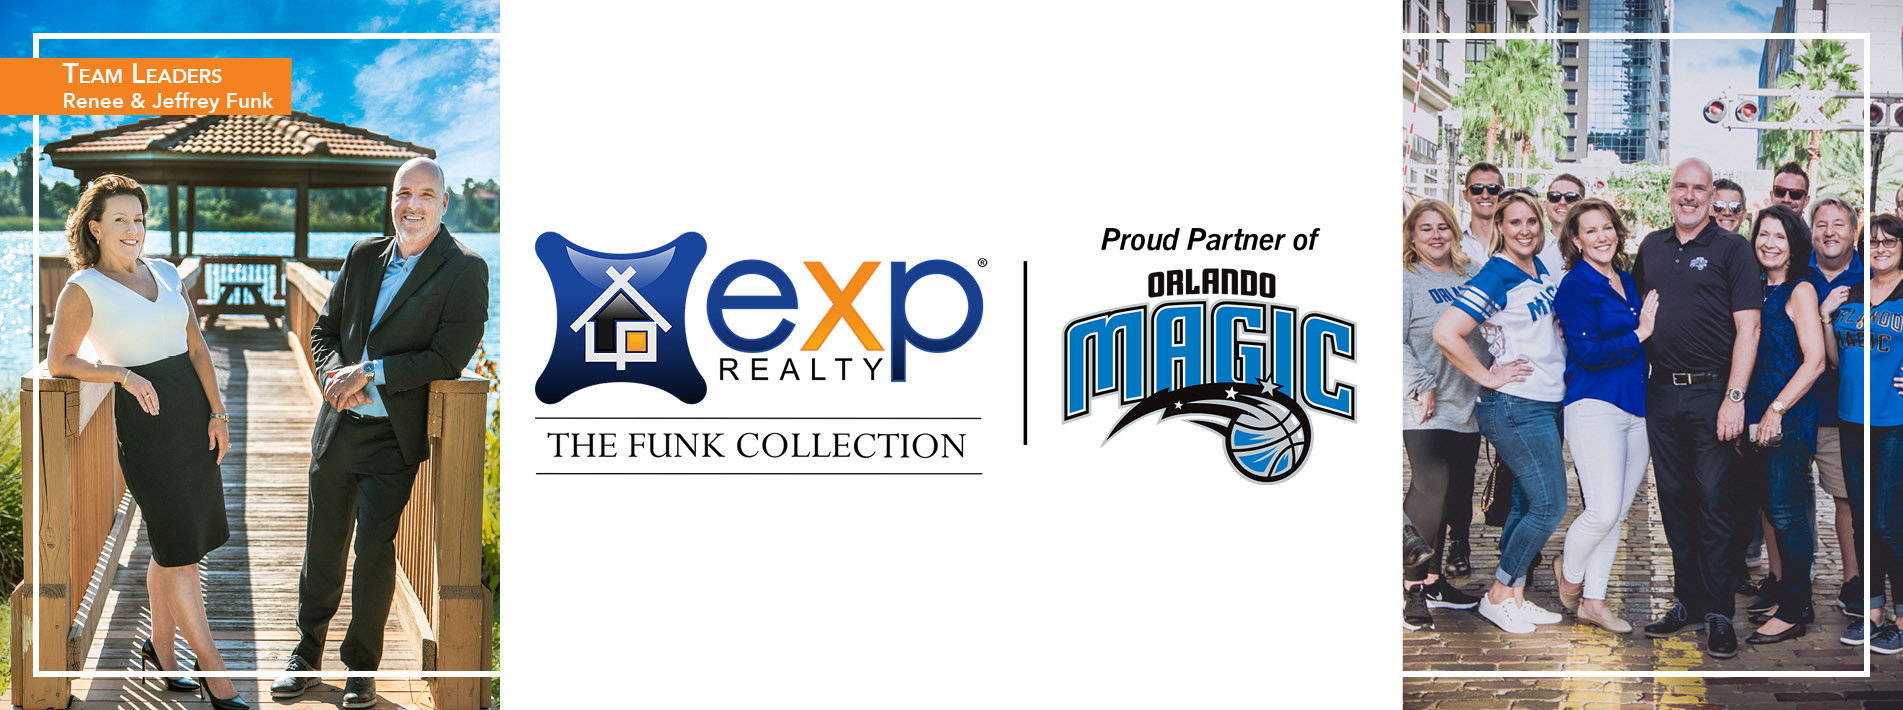 The Funk Collection brokered by eXp Realty - Orlando Realtors